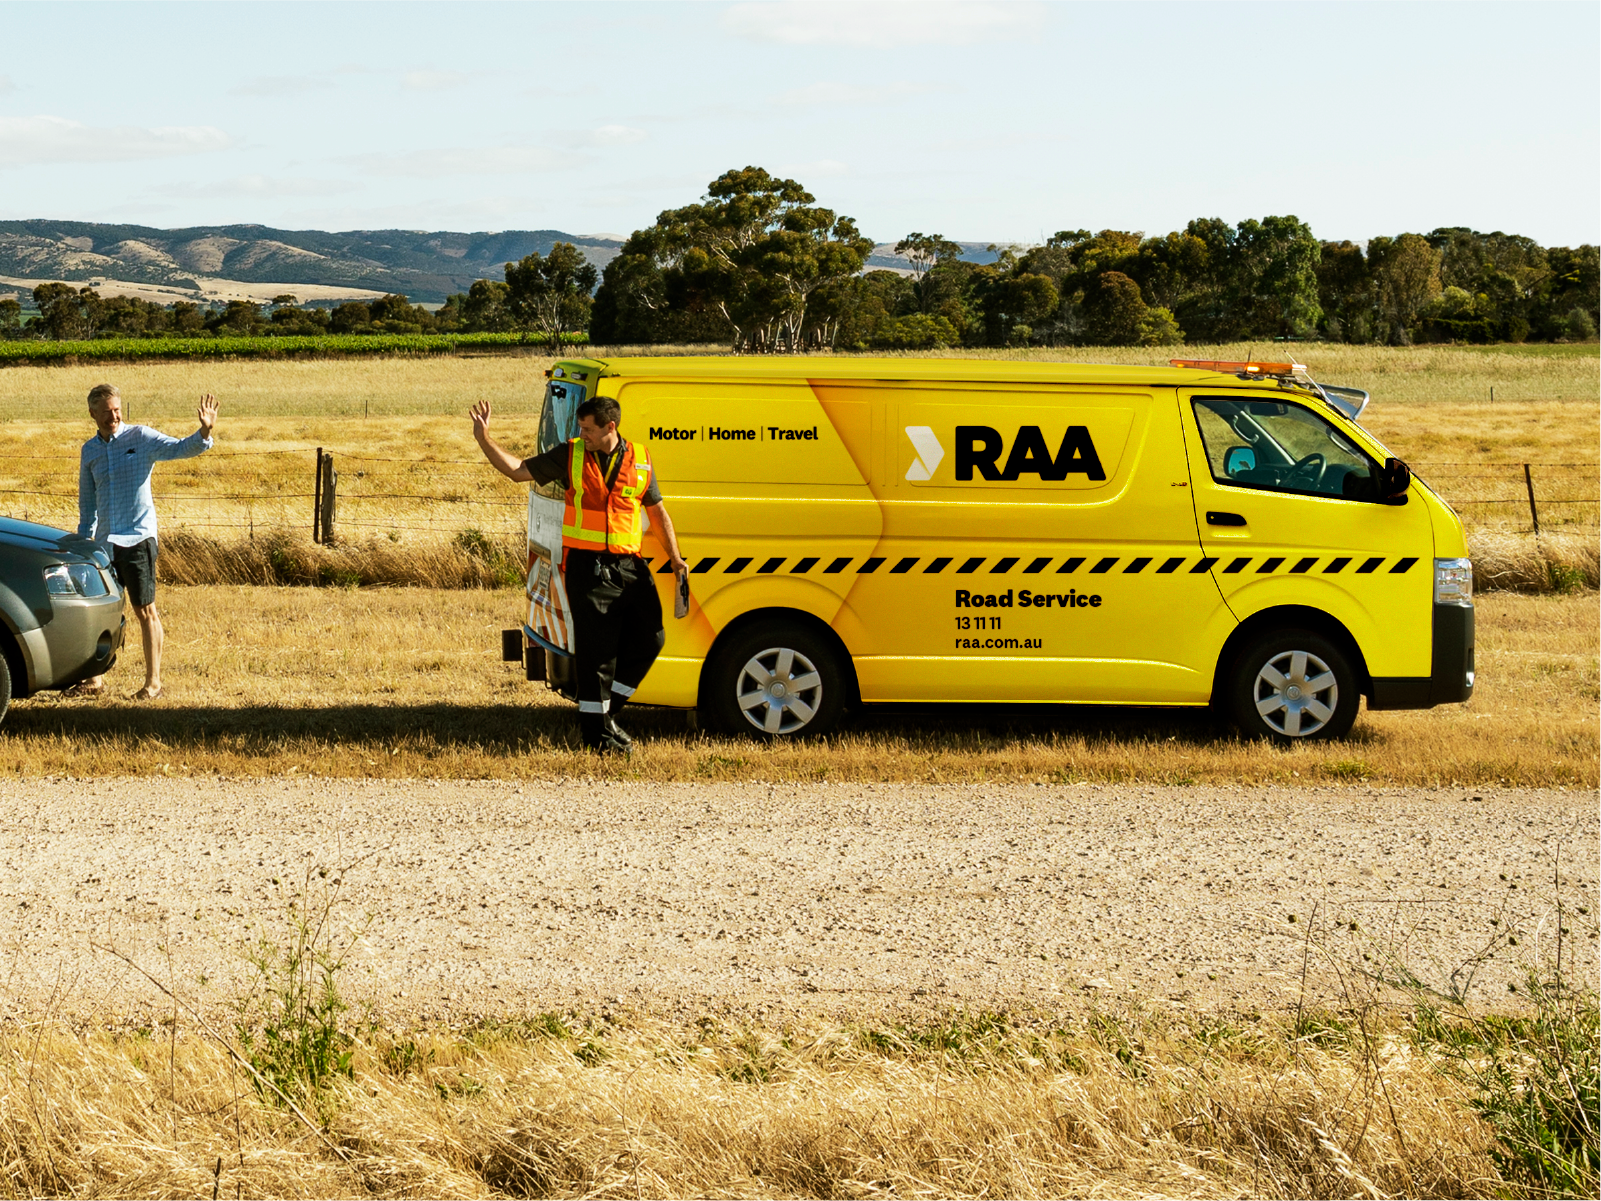 RAA unveils new logo and brand identity via Milo&Co backed by a creative platform via KWP!